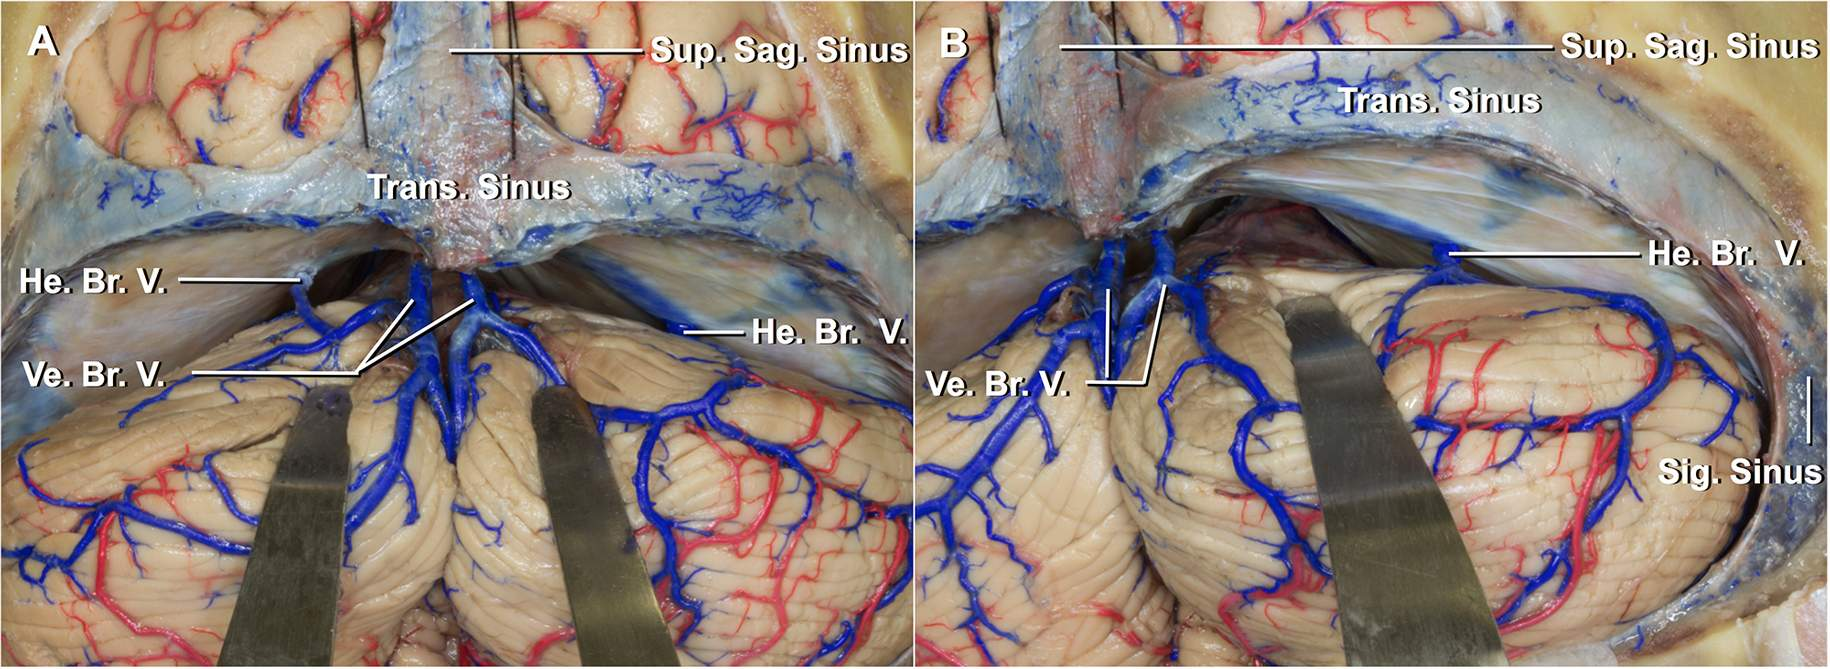 Figure 6: Compared with the midline approach (left image), the paramedian supracerebellar approach (right image) avoids most of the midline vermian bridging veins.